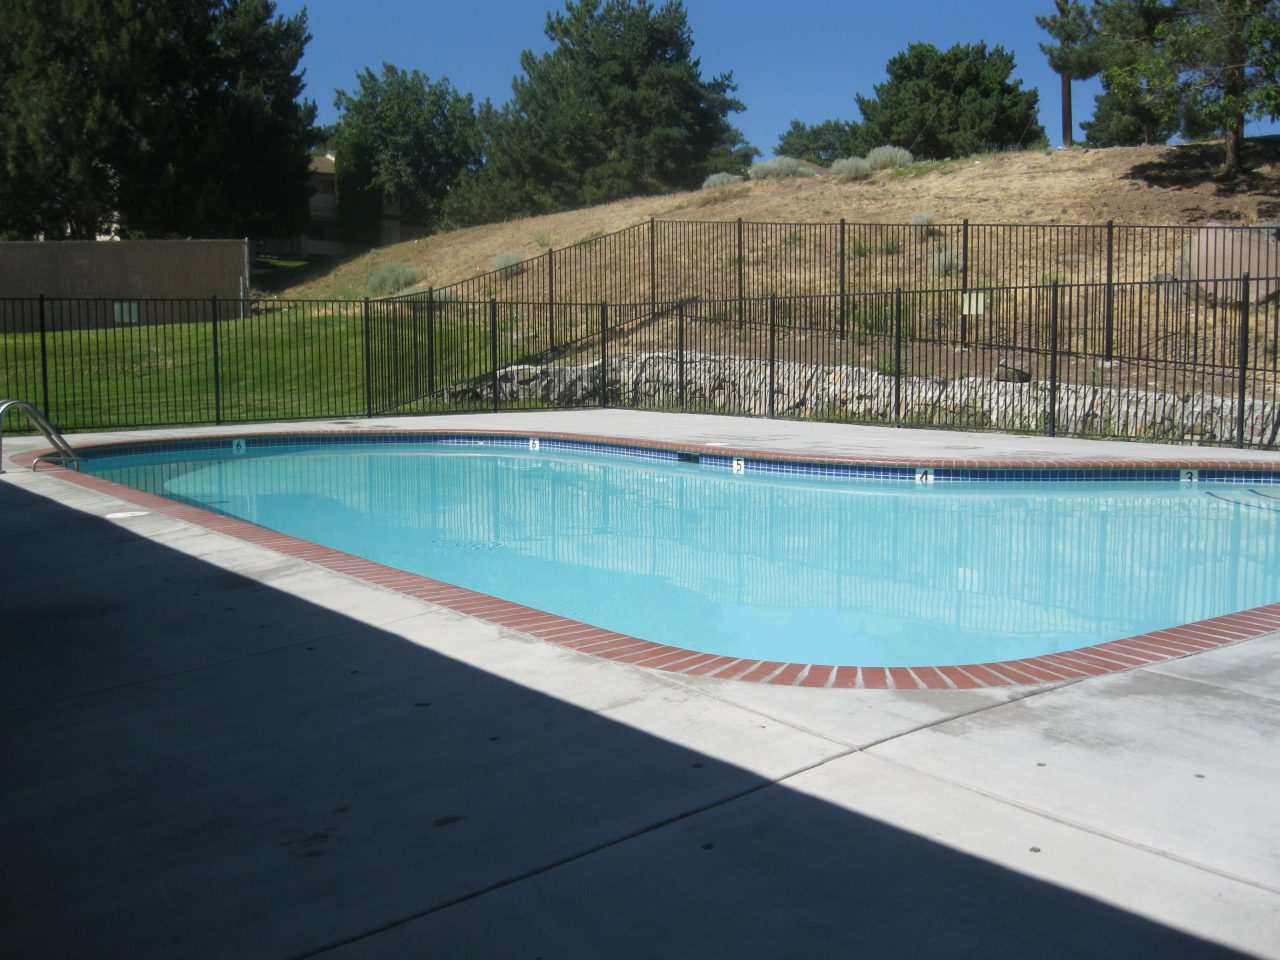 clear-acre-pool-e1485140513195